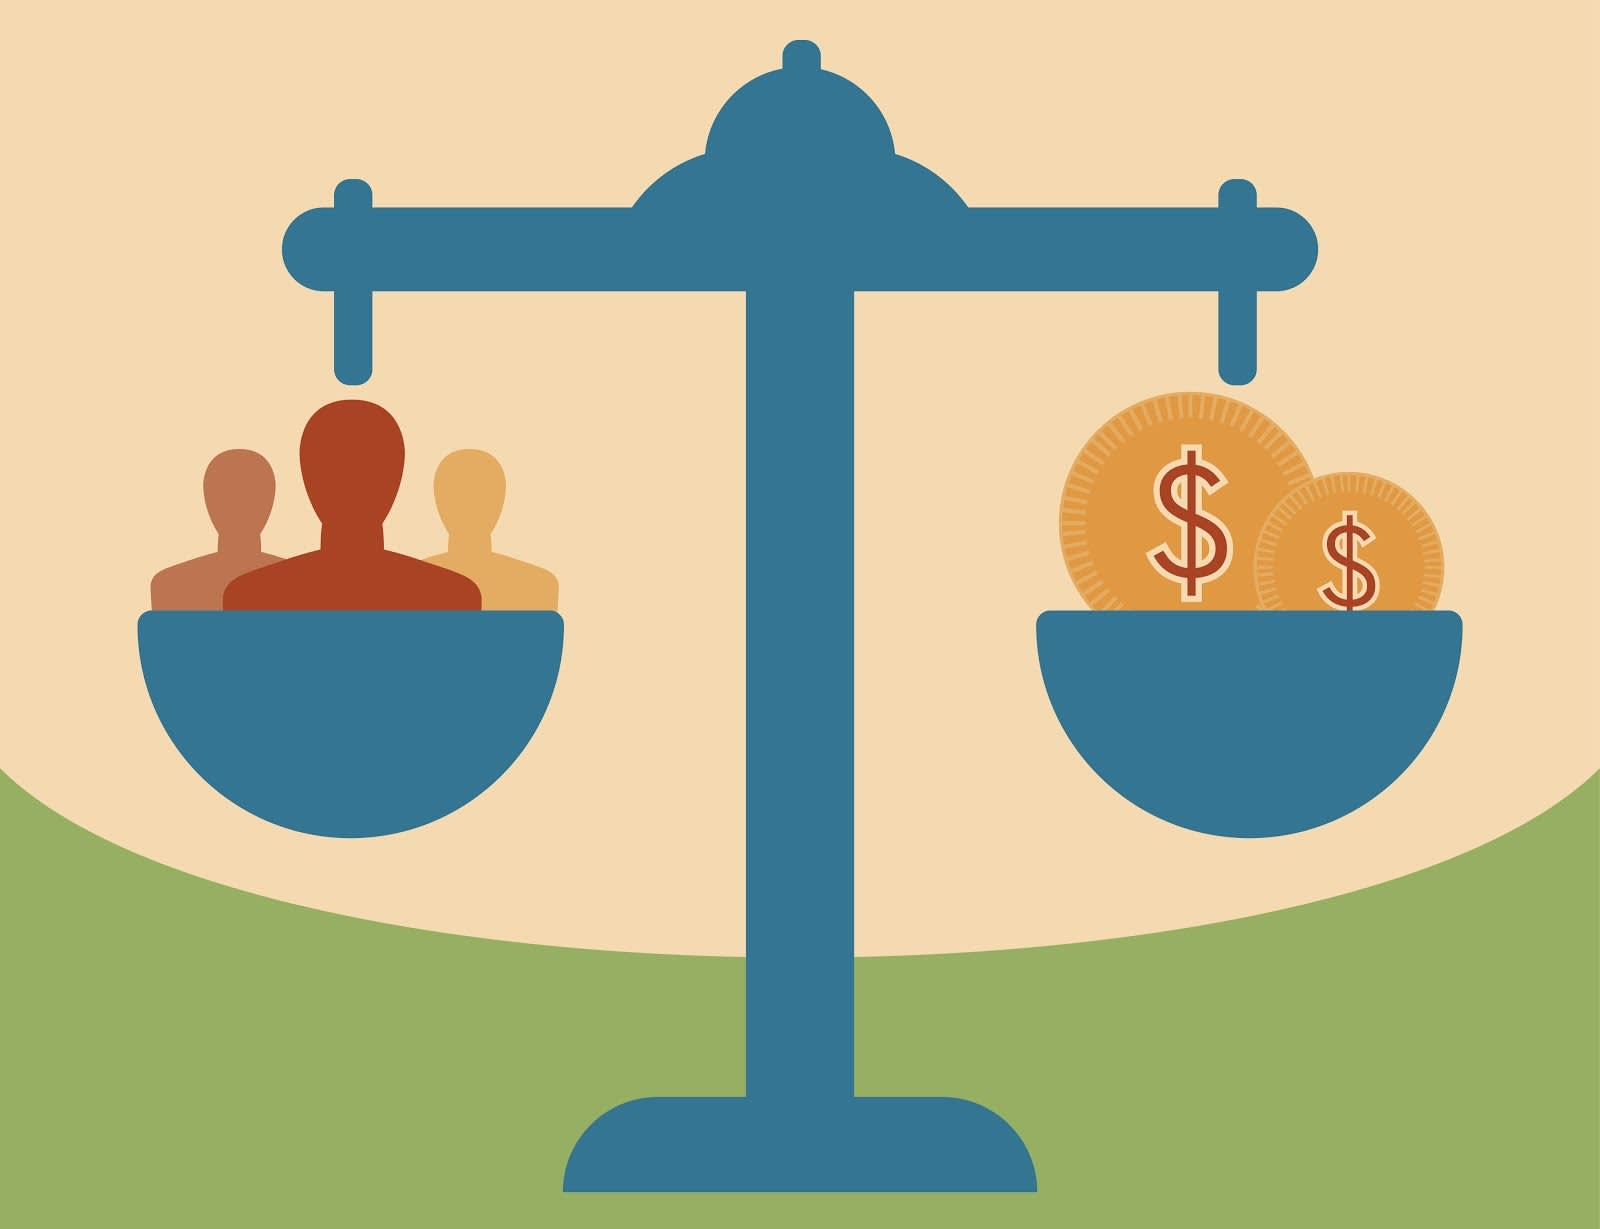 A scale with people on one side and money on the other represents Salesforce Billing, which enables Finance teams to balance their obligations to the business as well as to their customers.